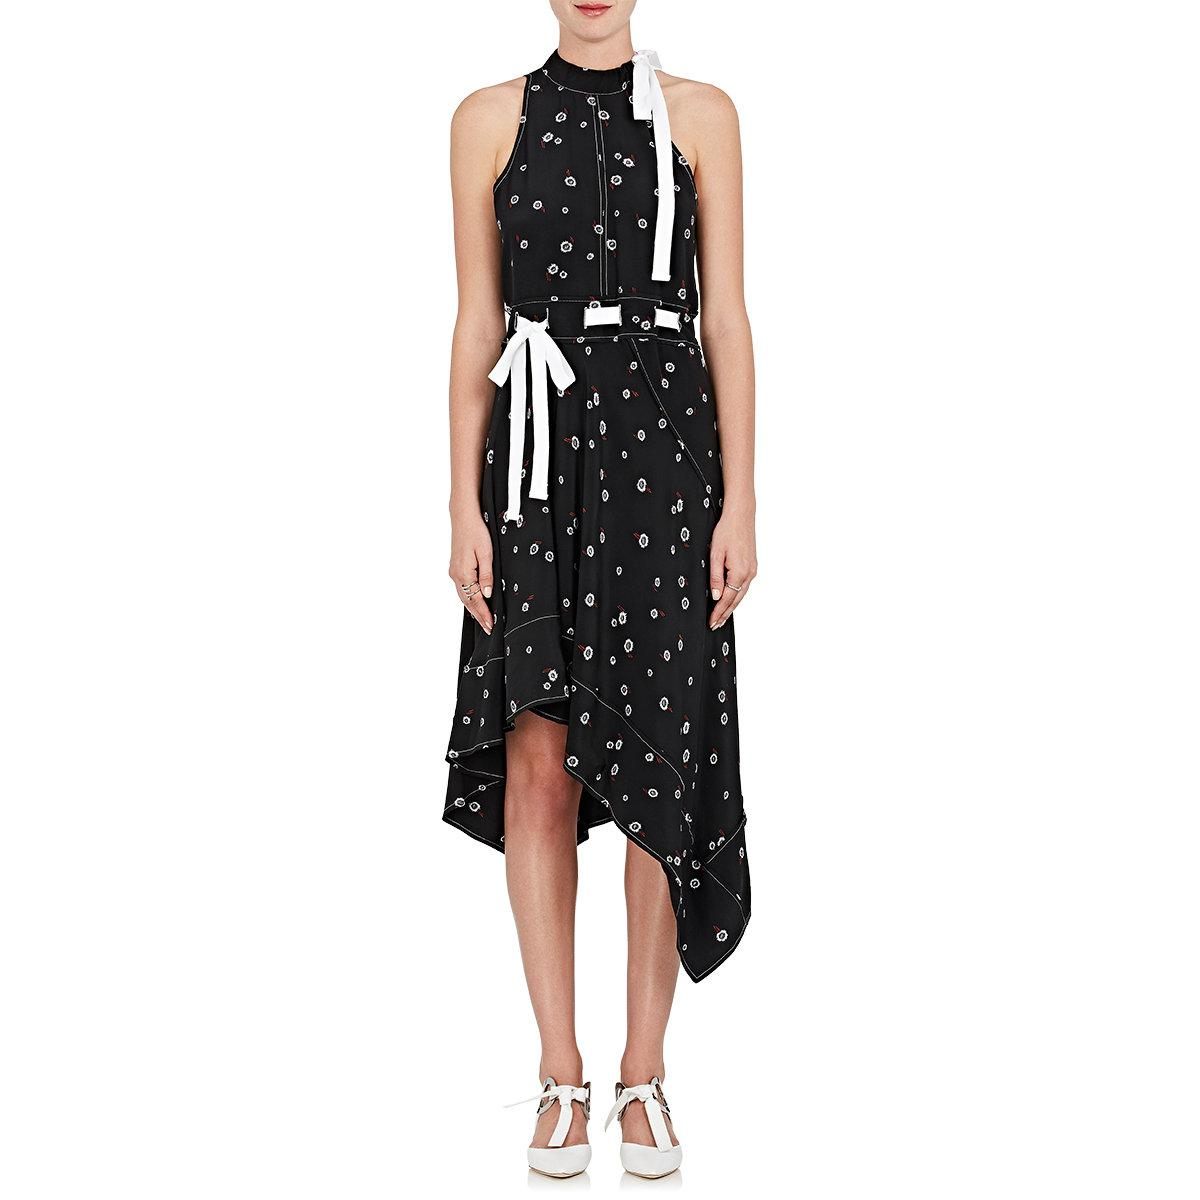 Footaction For Sale New Sale Online Proenza Schouler Woman Asymmetric Printed Silk-twill Dress White Size 6 Proenza Schouler Pictures Cheap Online ribdY8ALK